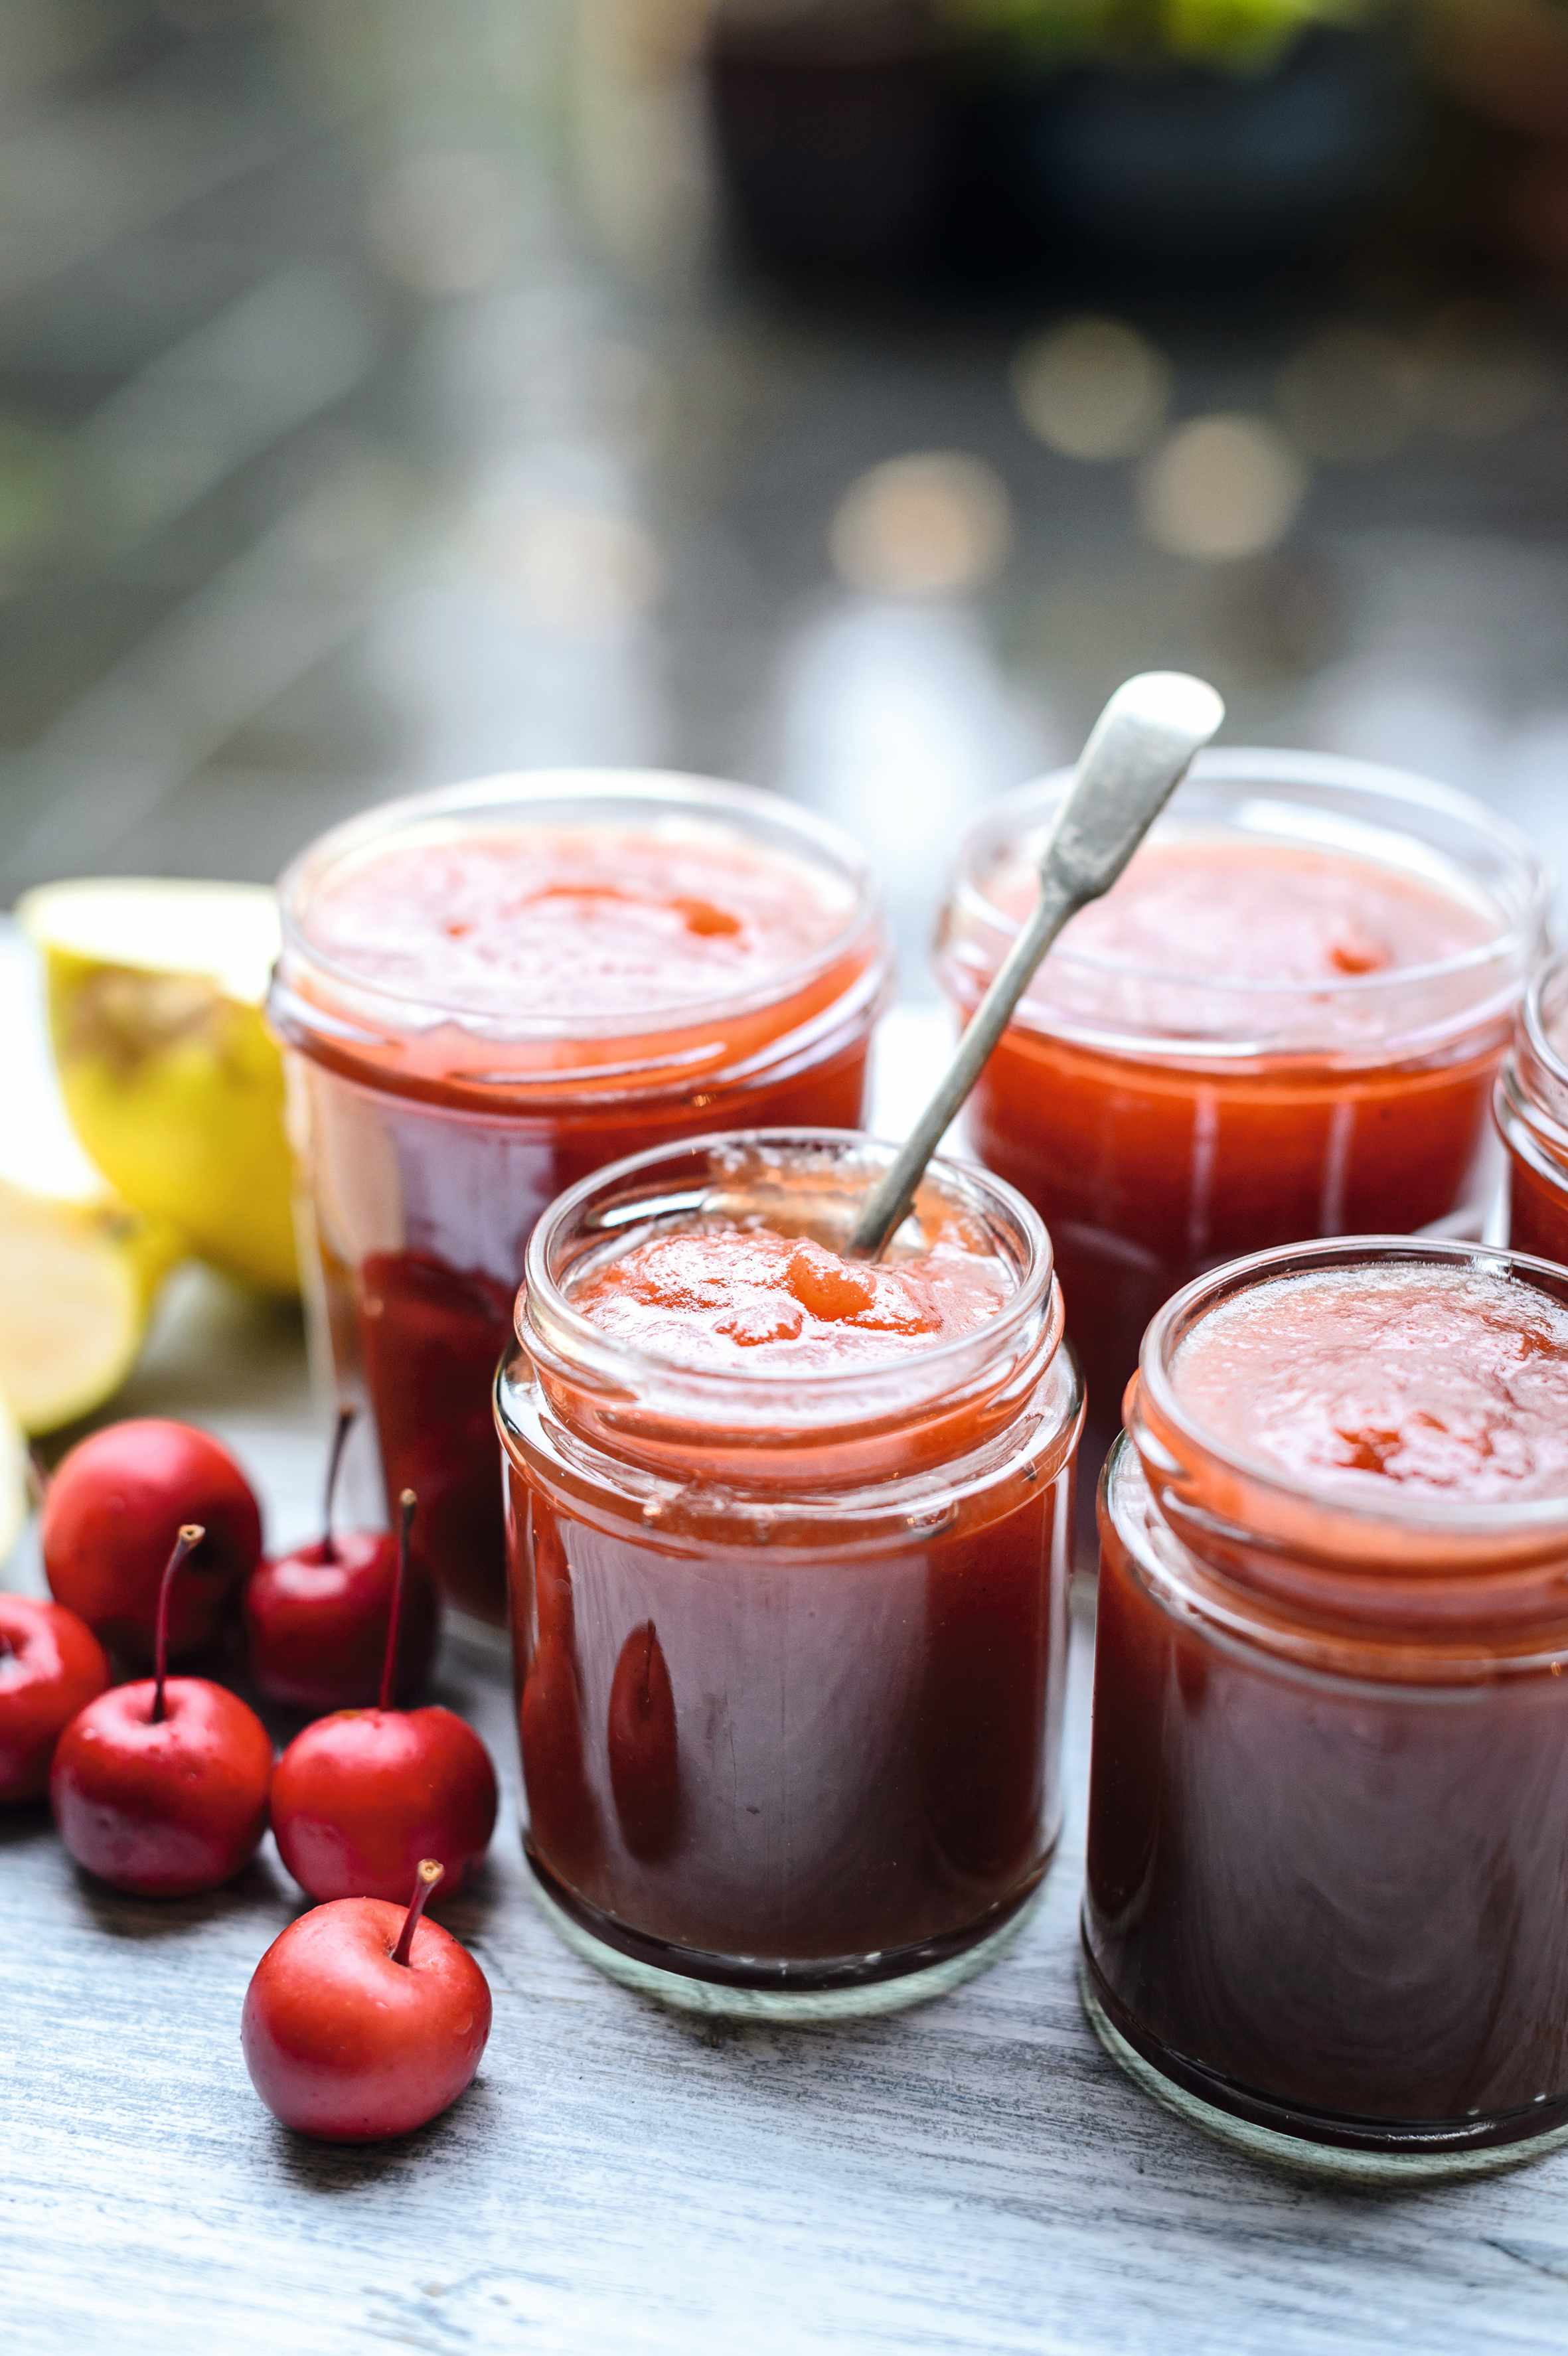 Spiced apple butter in jar